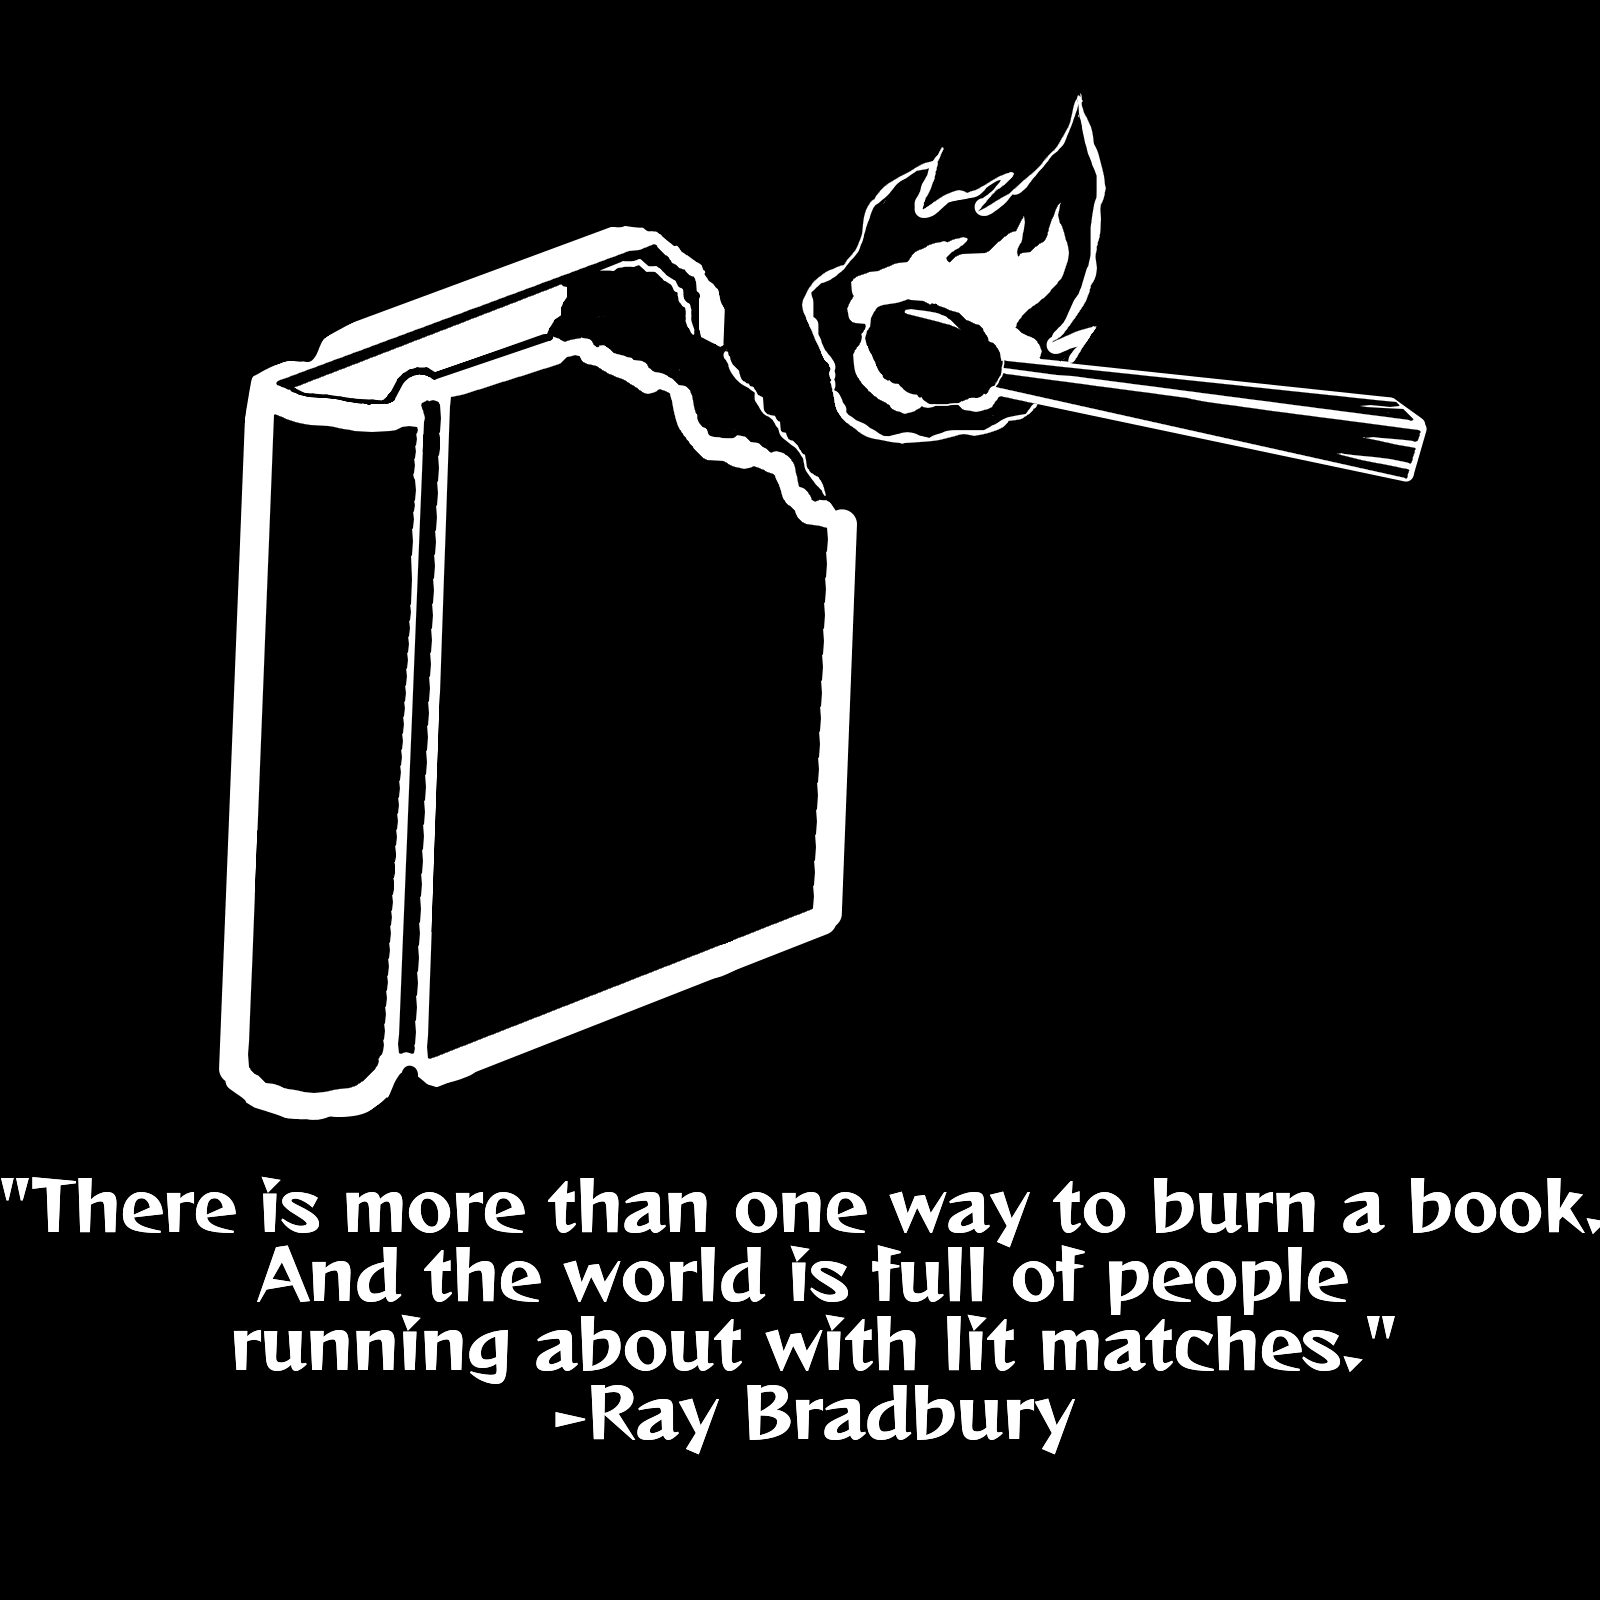 Banned Books Week T-shirt design in black and white showing a lit mat burning a book with a Fahrenheit 451 quote